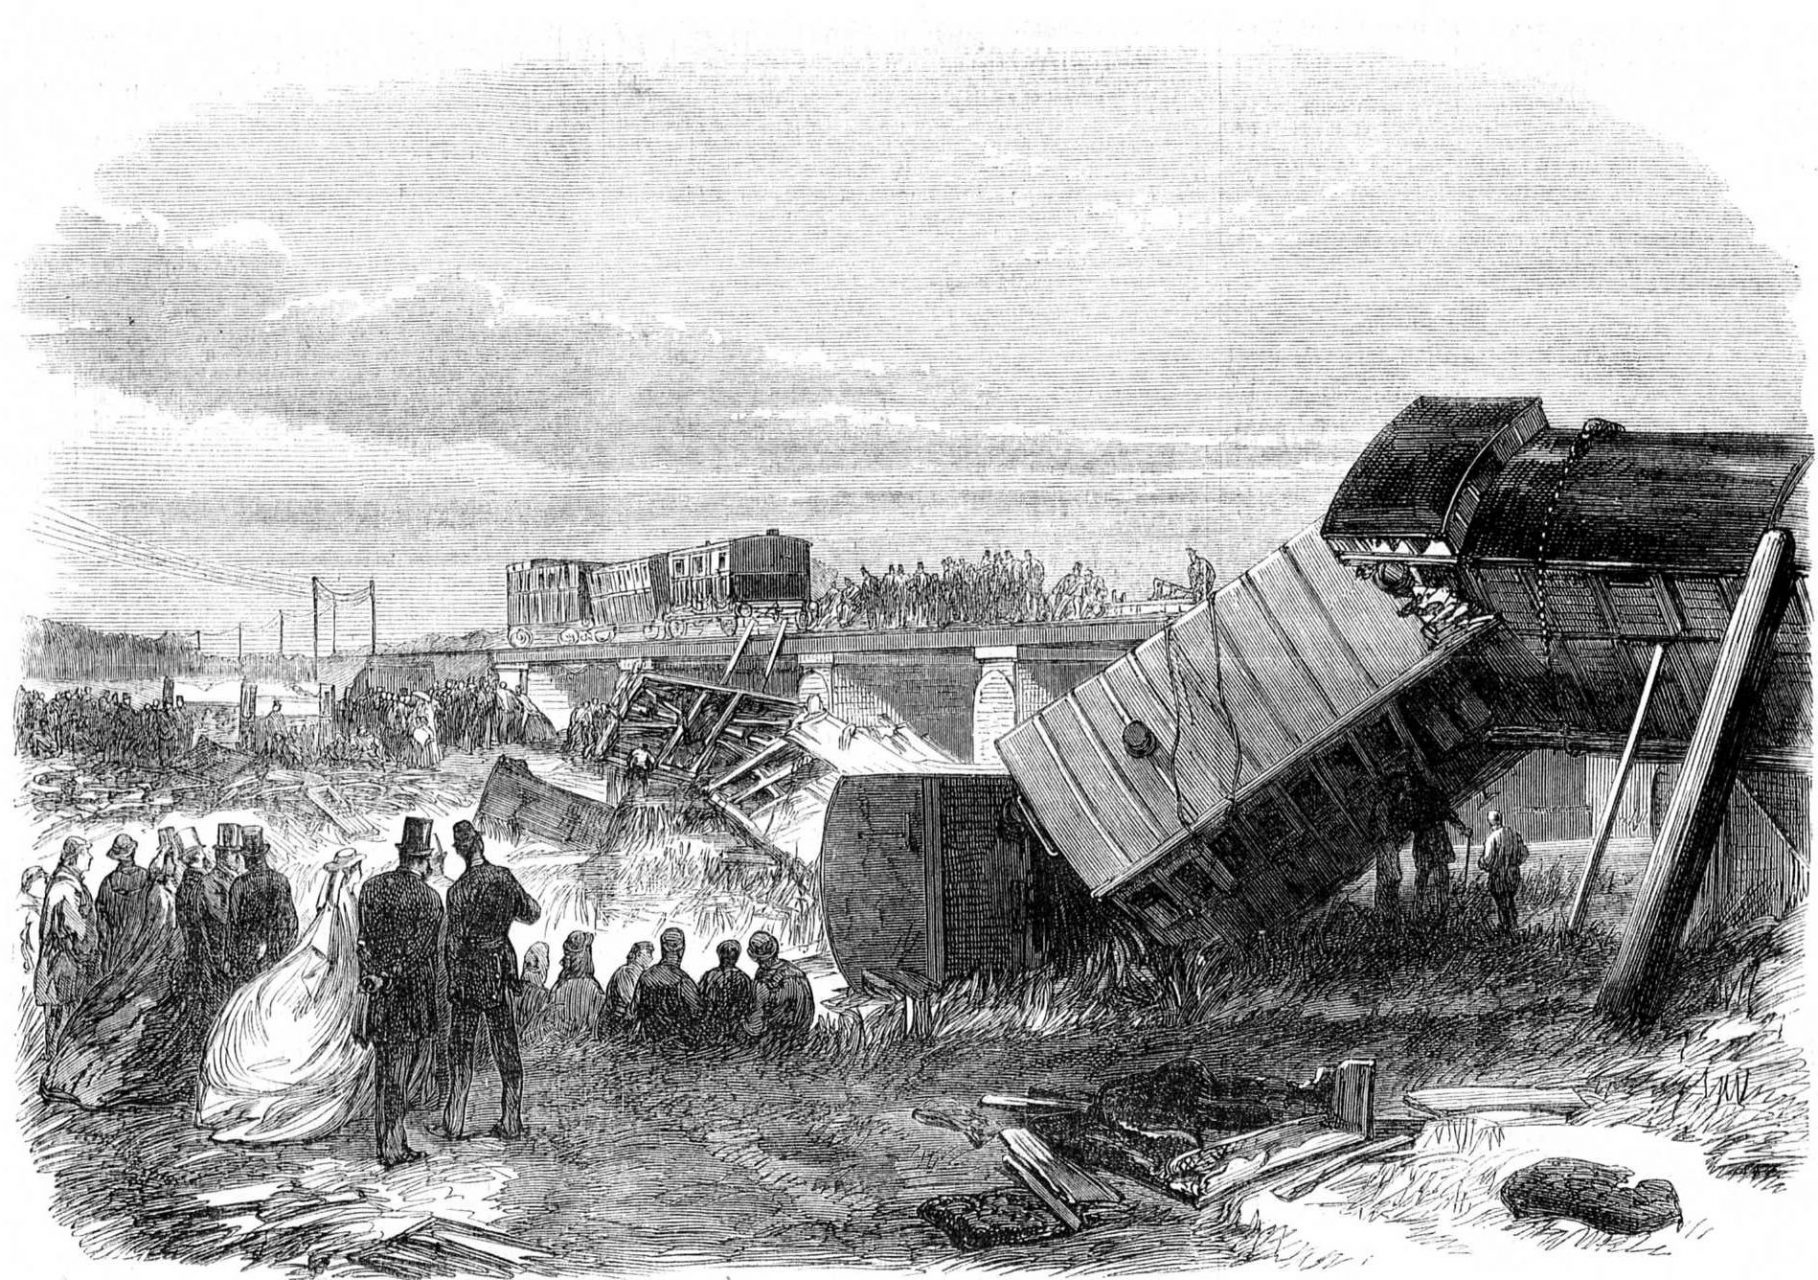 The Staplehurst Railway crash, witnessed by Charles Dickens